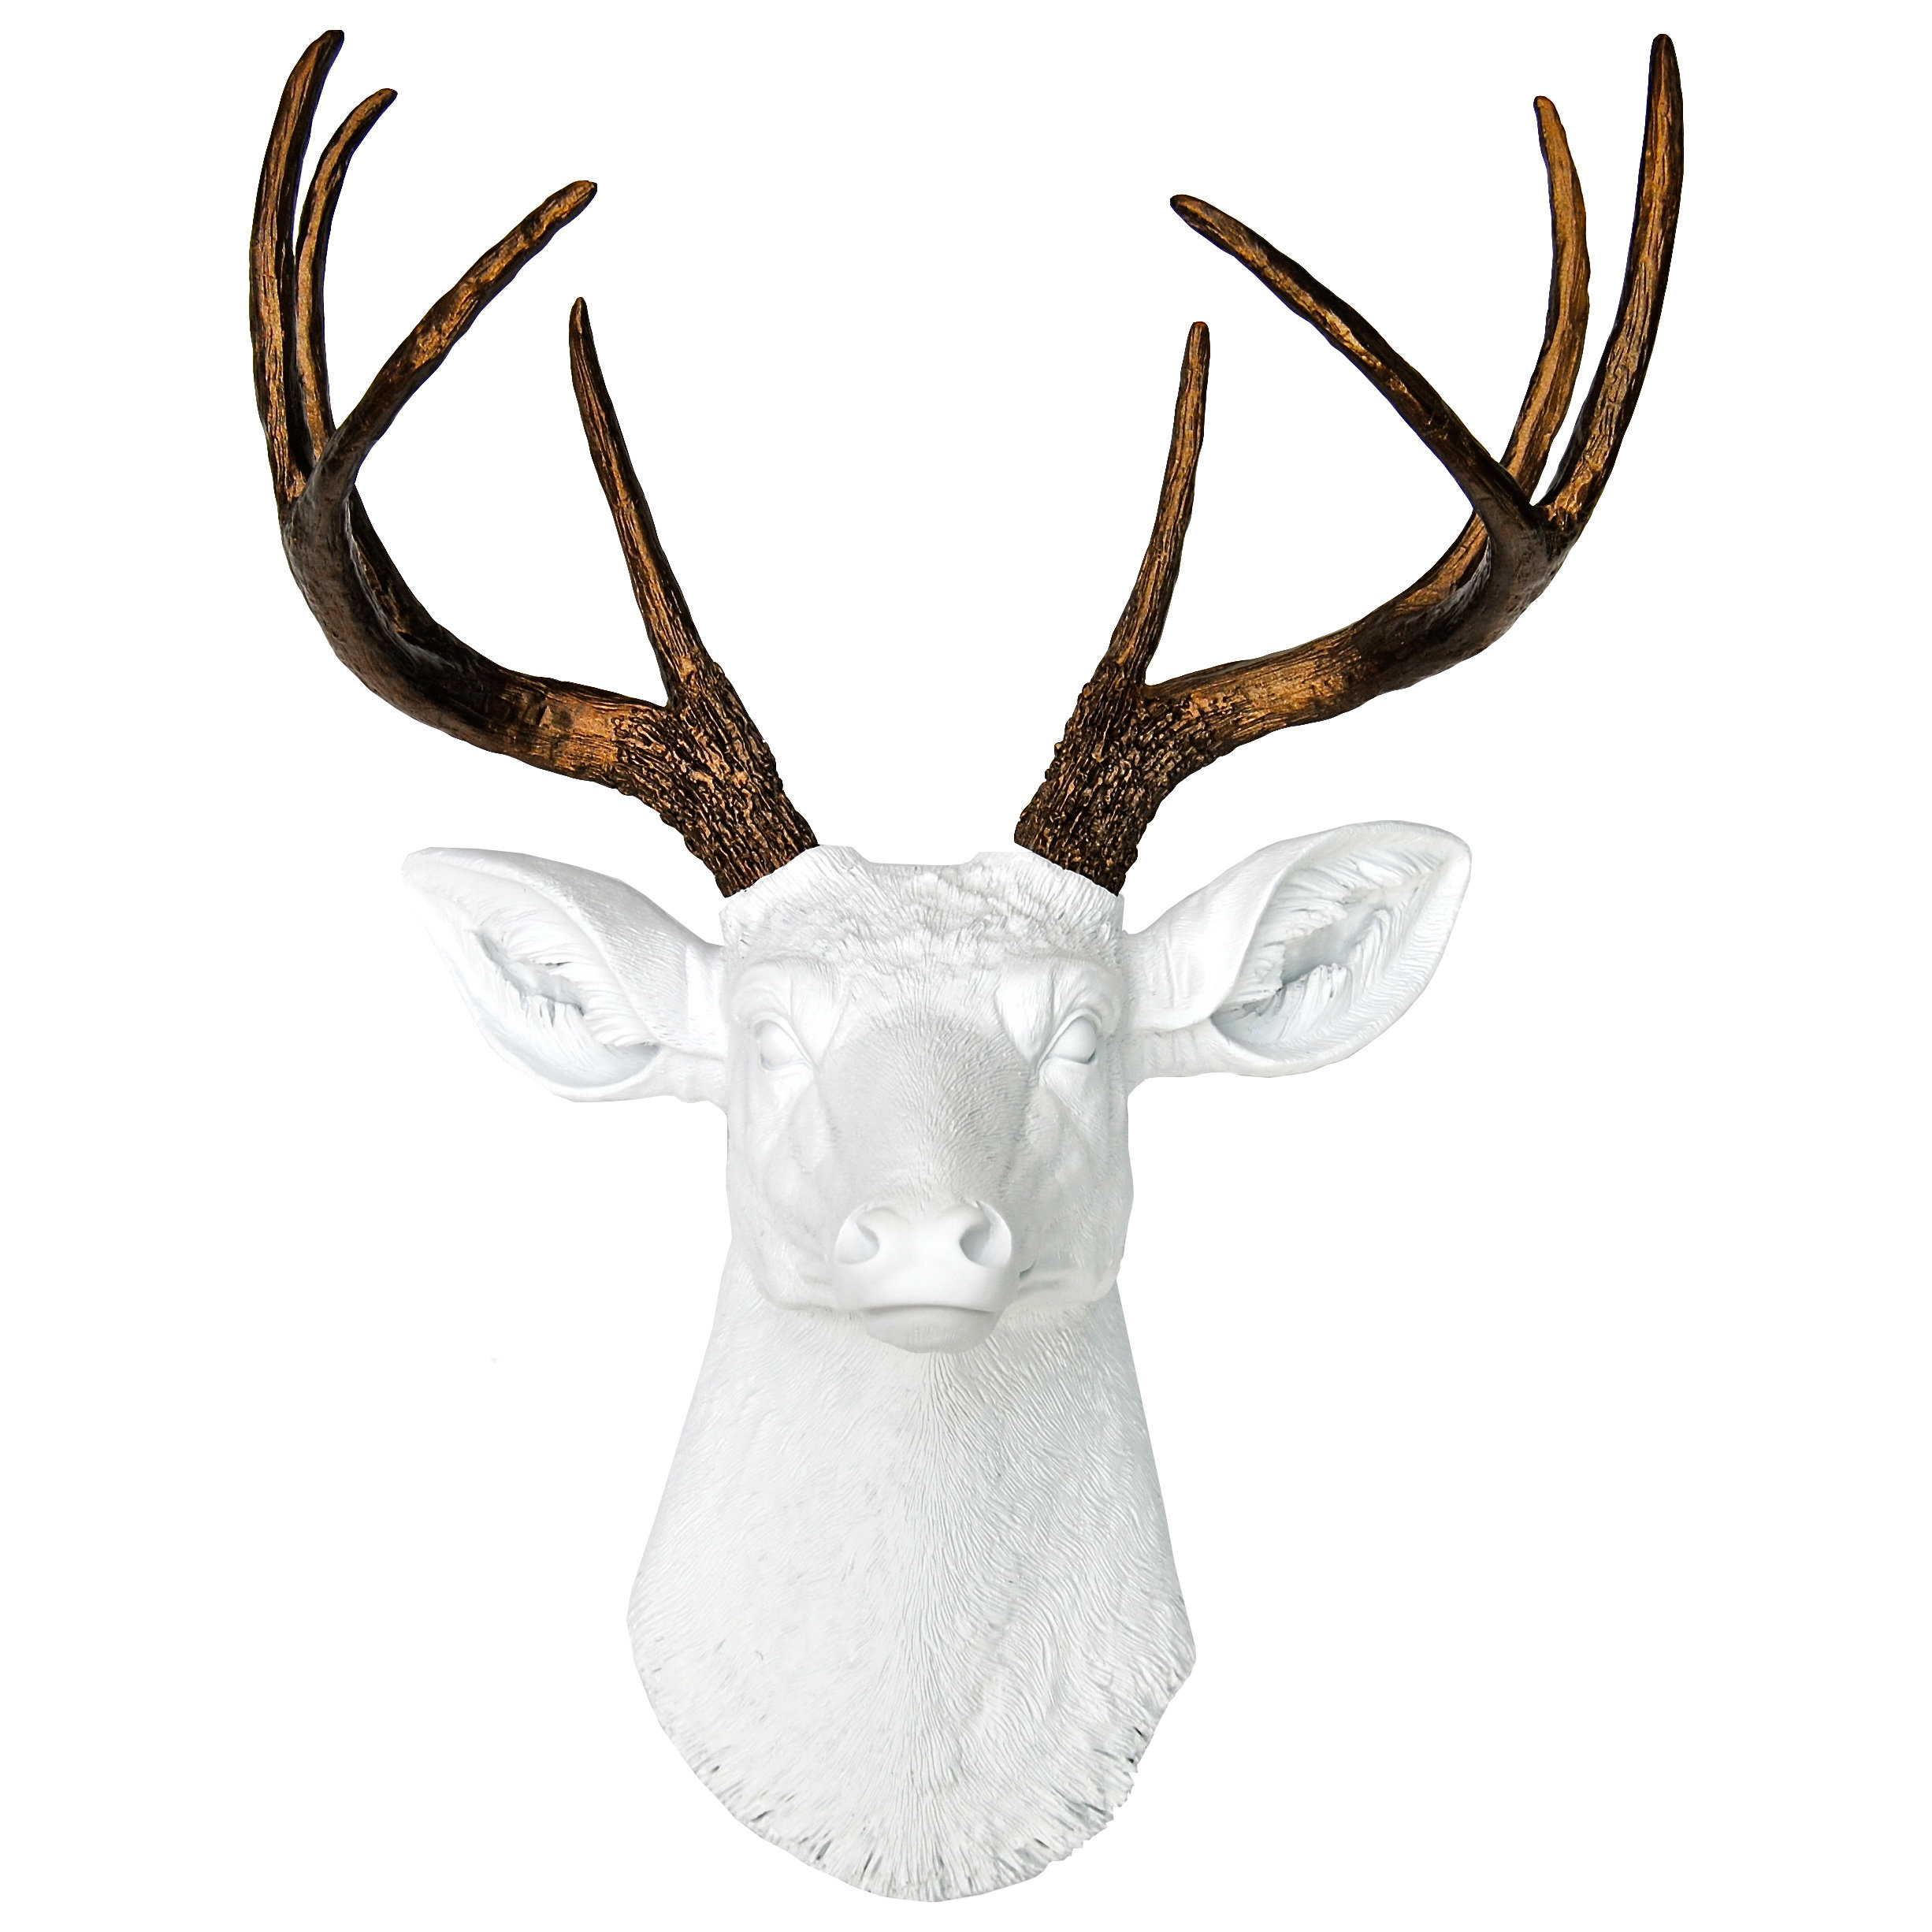 Allmodern Throughout 2020 Large Deer Head Faux Taxidermy Wall Decor (View 16 of 20)